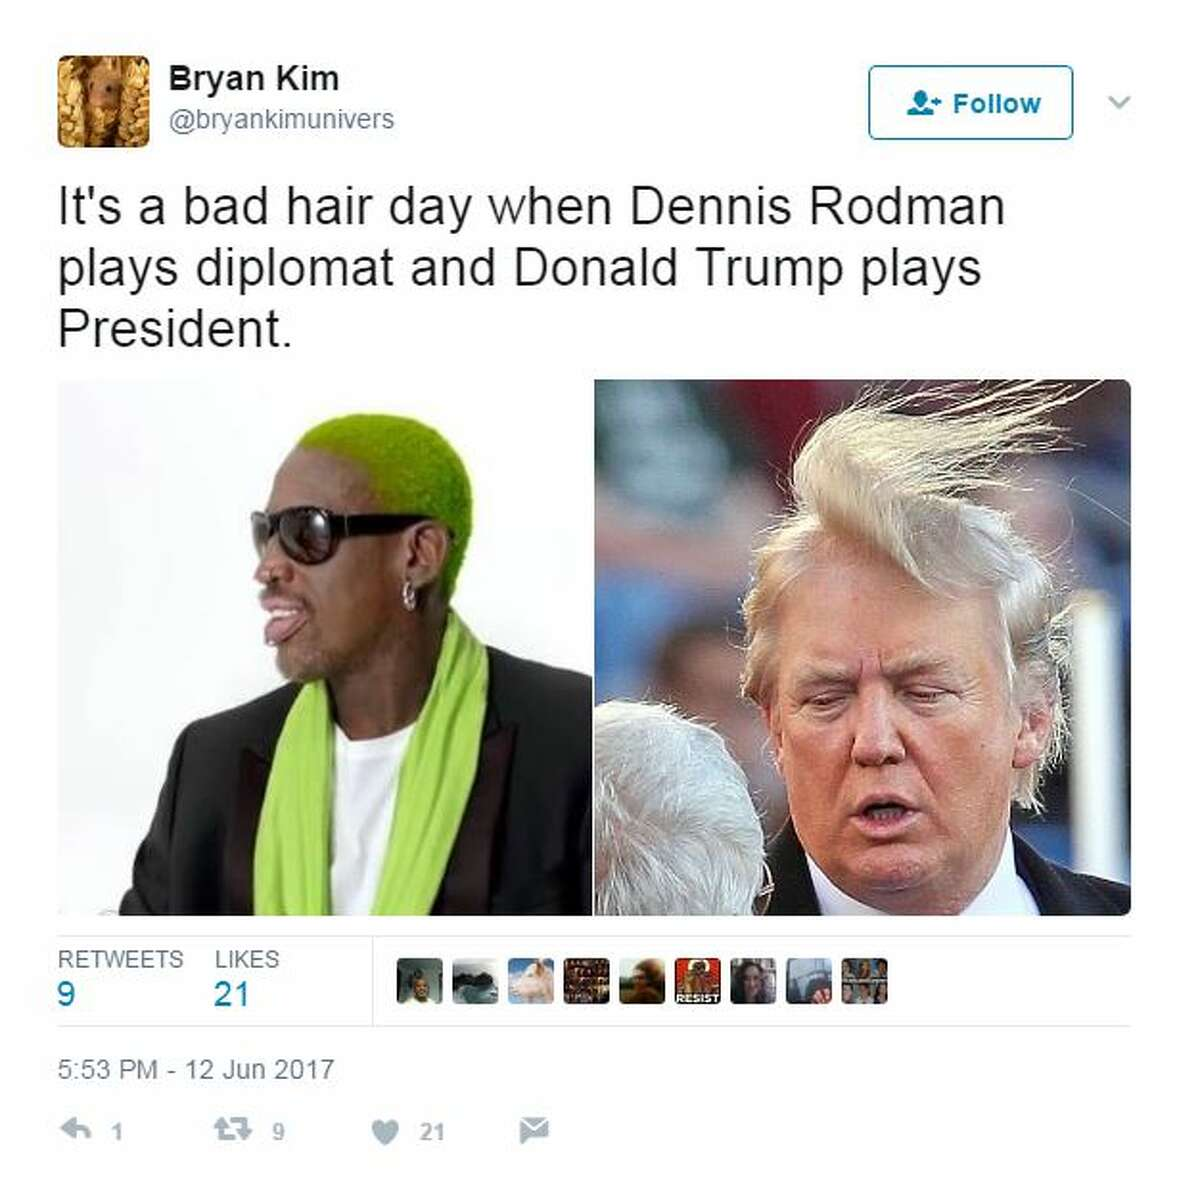 It's a bad hair day when Dennis Rodman plays diplomat and Donald Trump plays President.